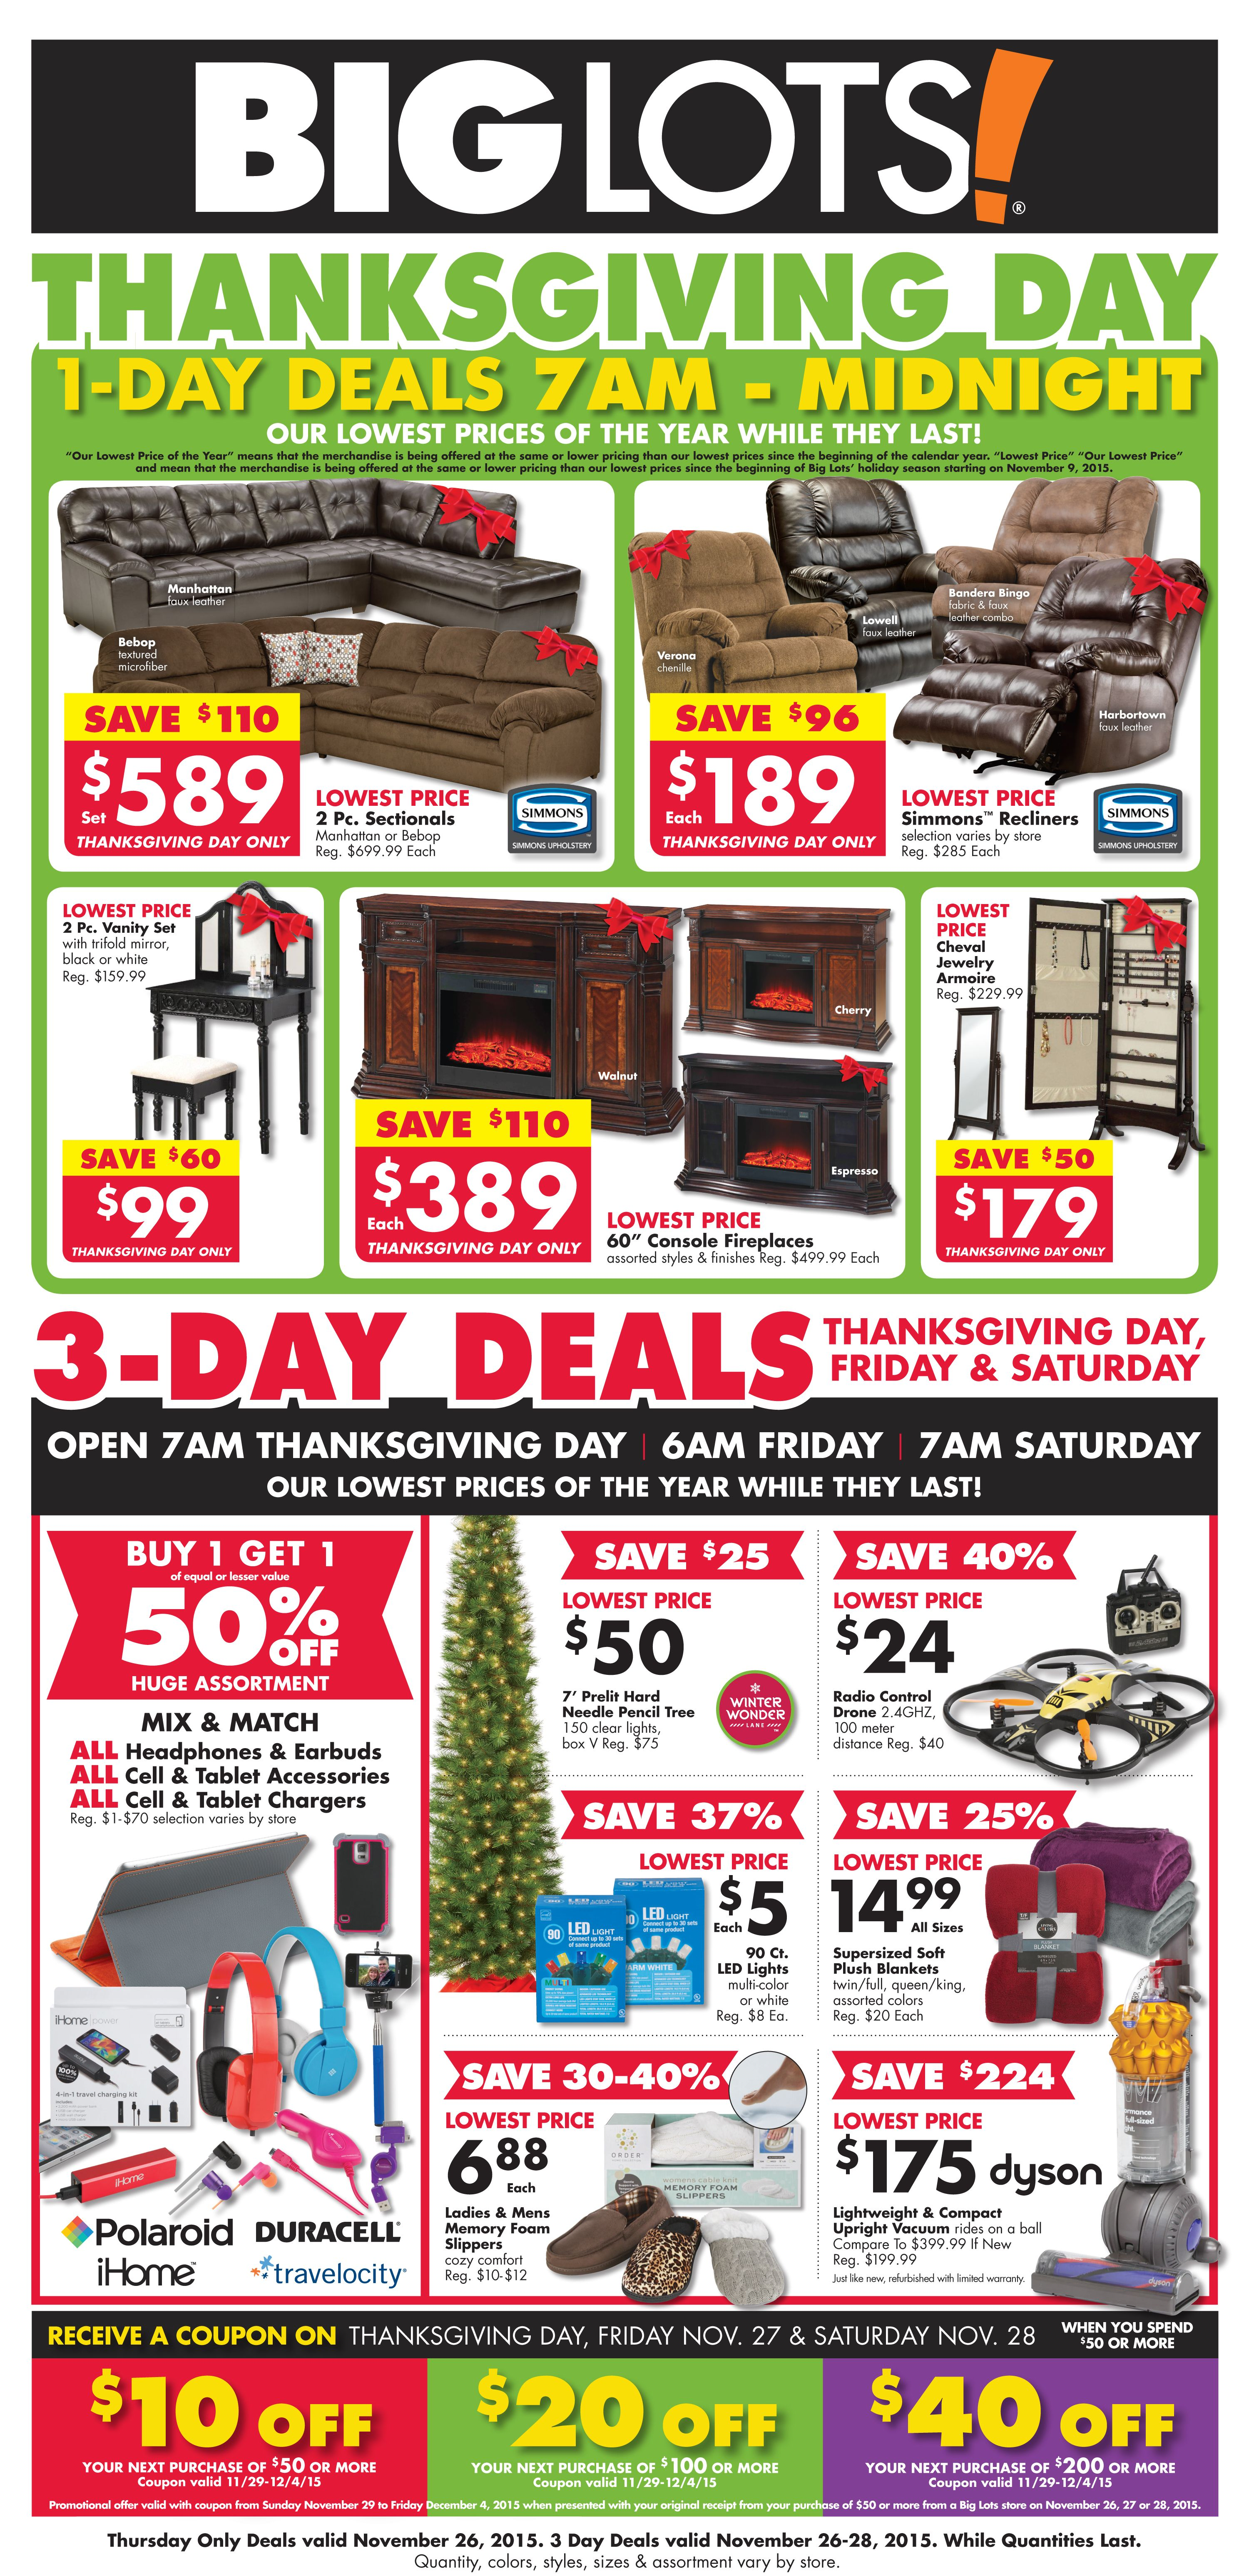 big lots black friday 2015 ad deals sales httpswww - Big Lots After Christmas Sale